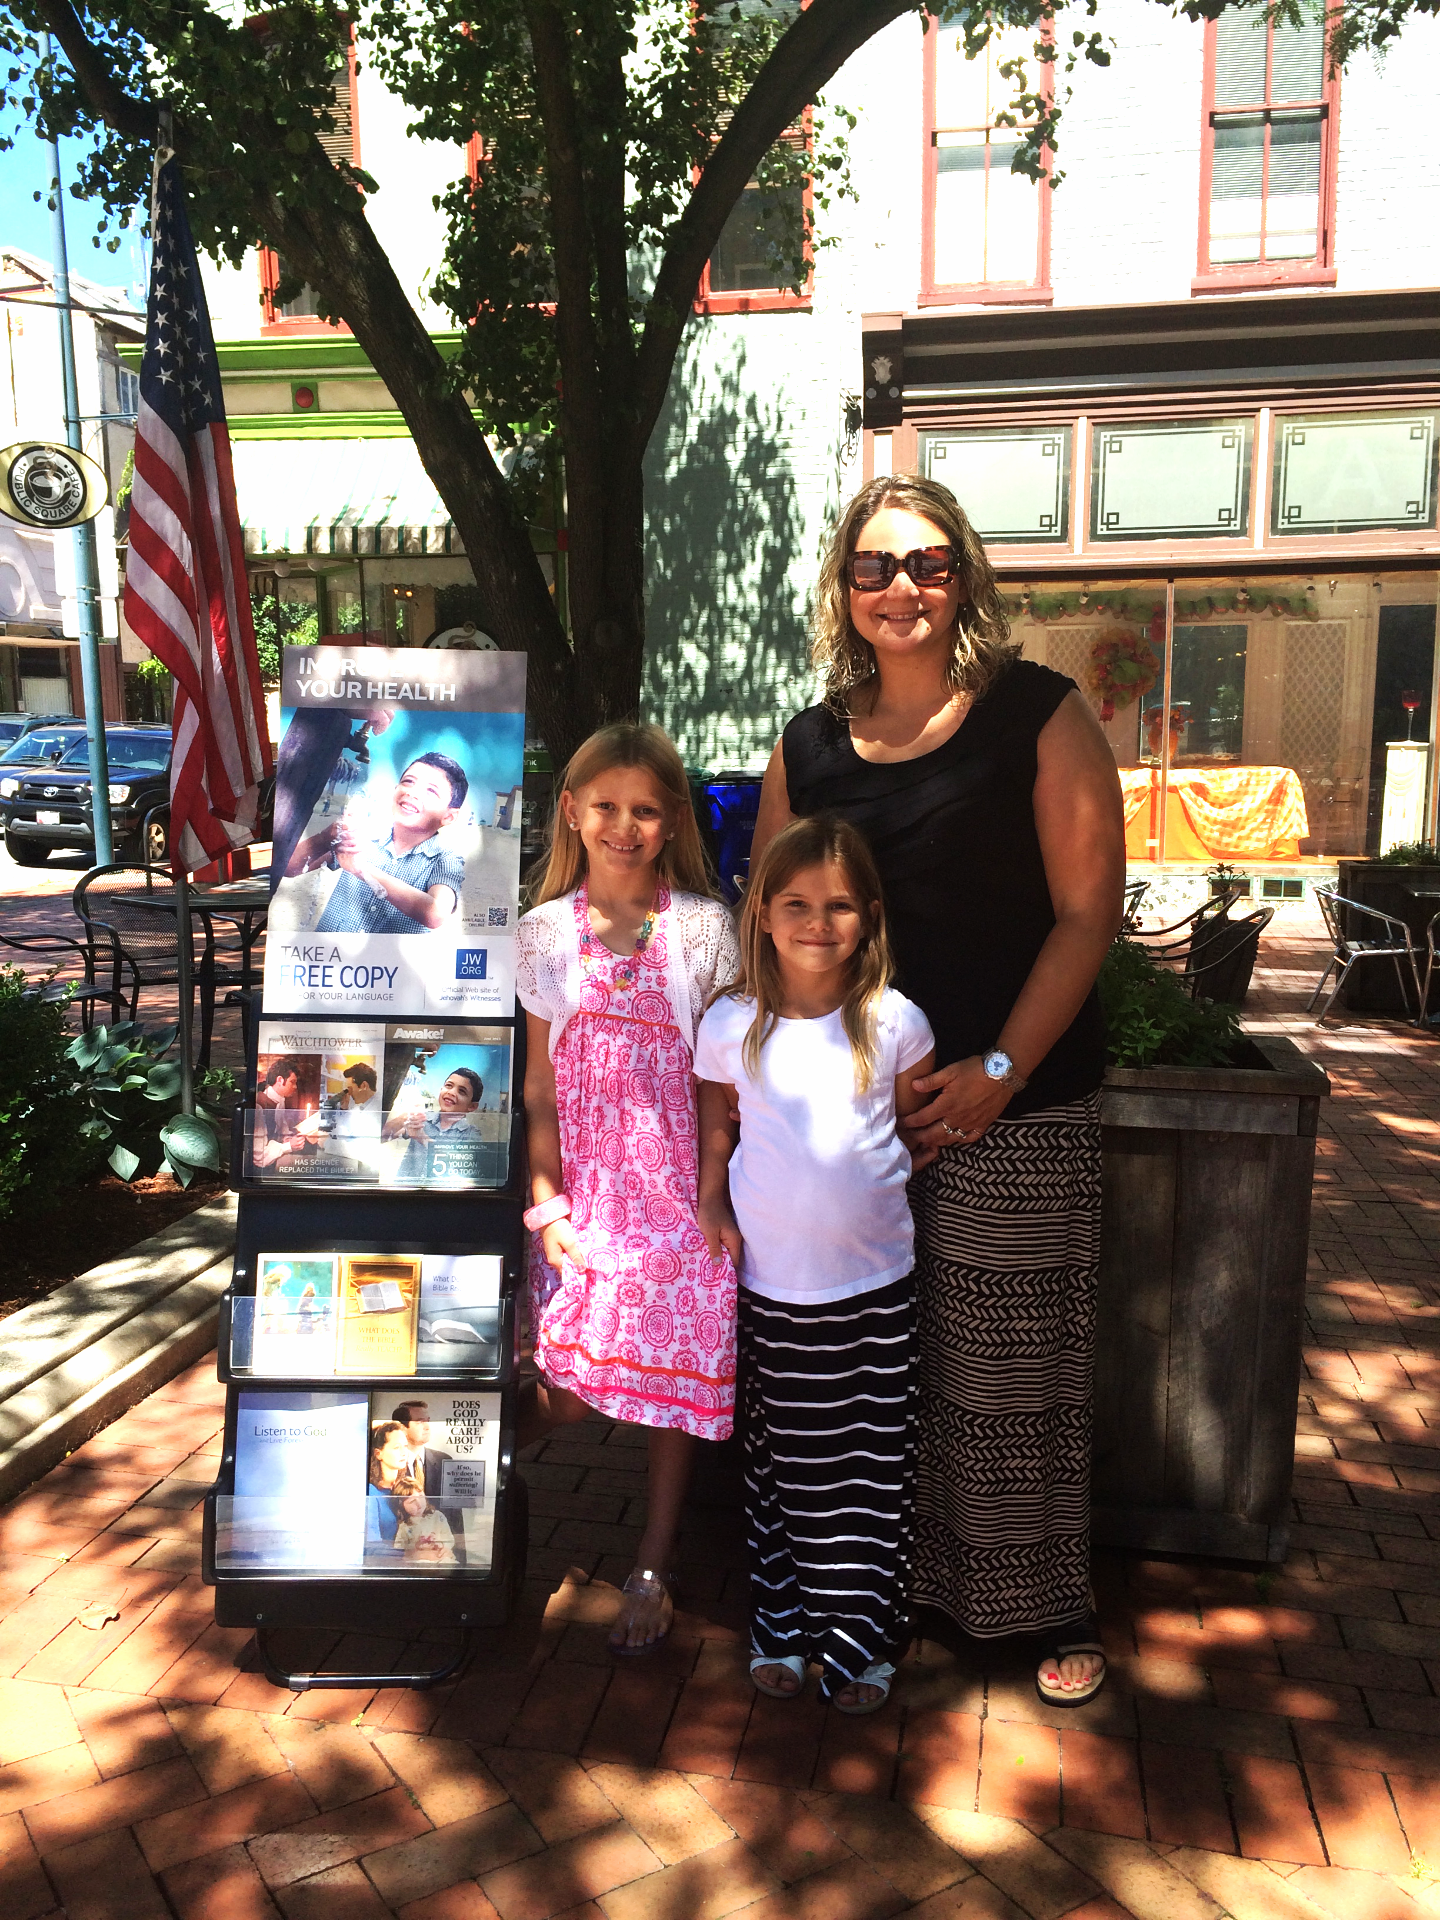 Gallery | publicwitnessing